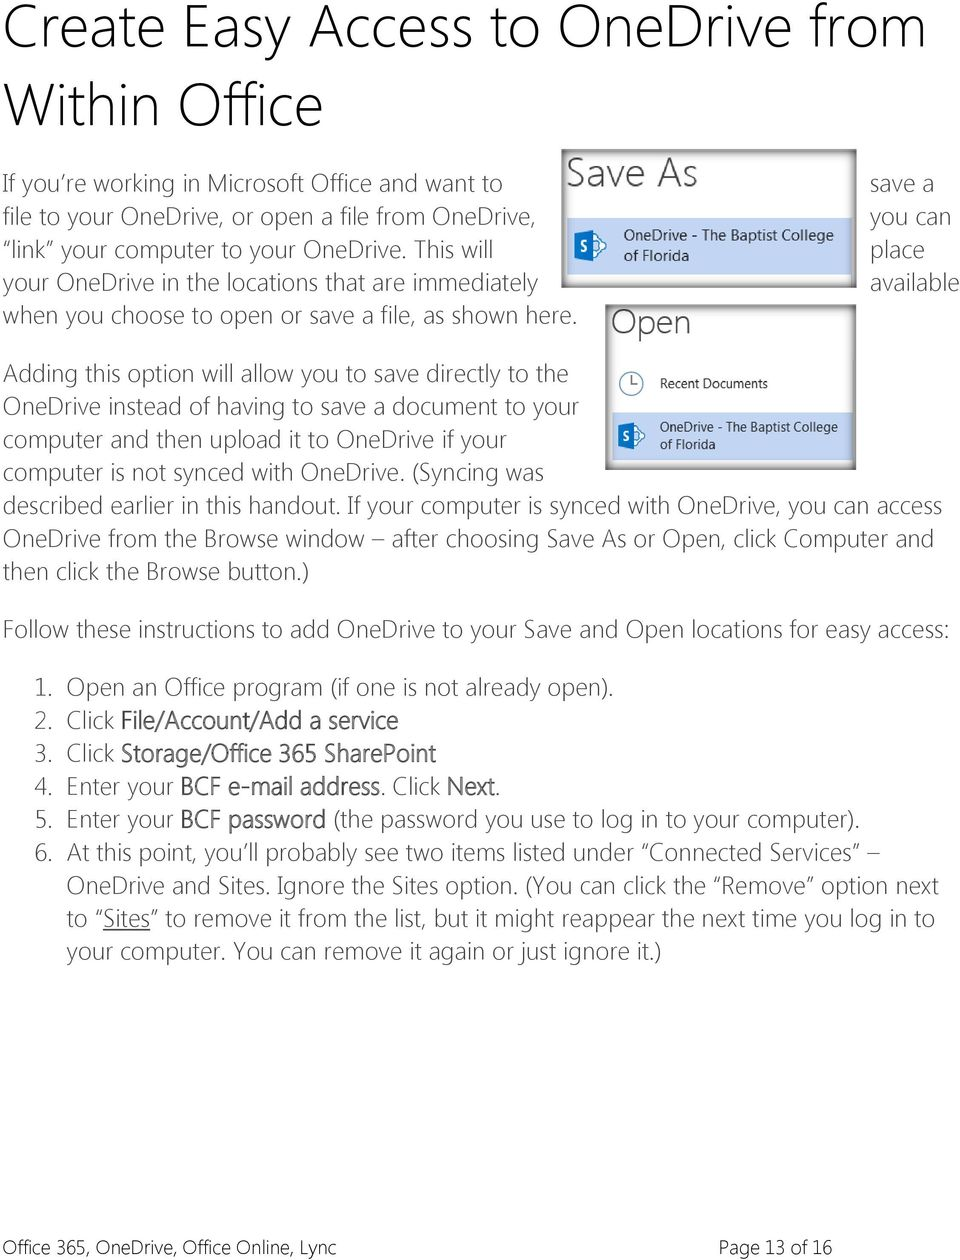 save a you can place available Adding this option will allow you to save directly to the OneDrive instead of having to save a document to your computer and then upload it to OneDrive if your computer